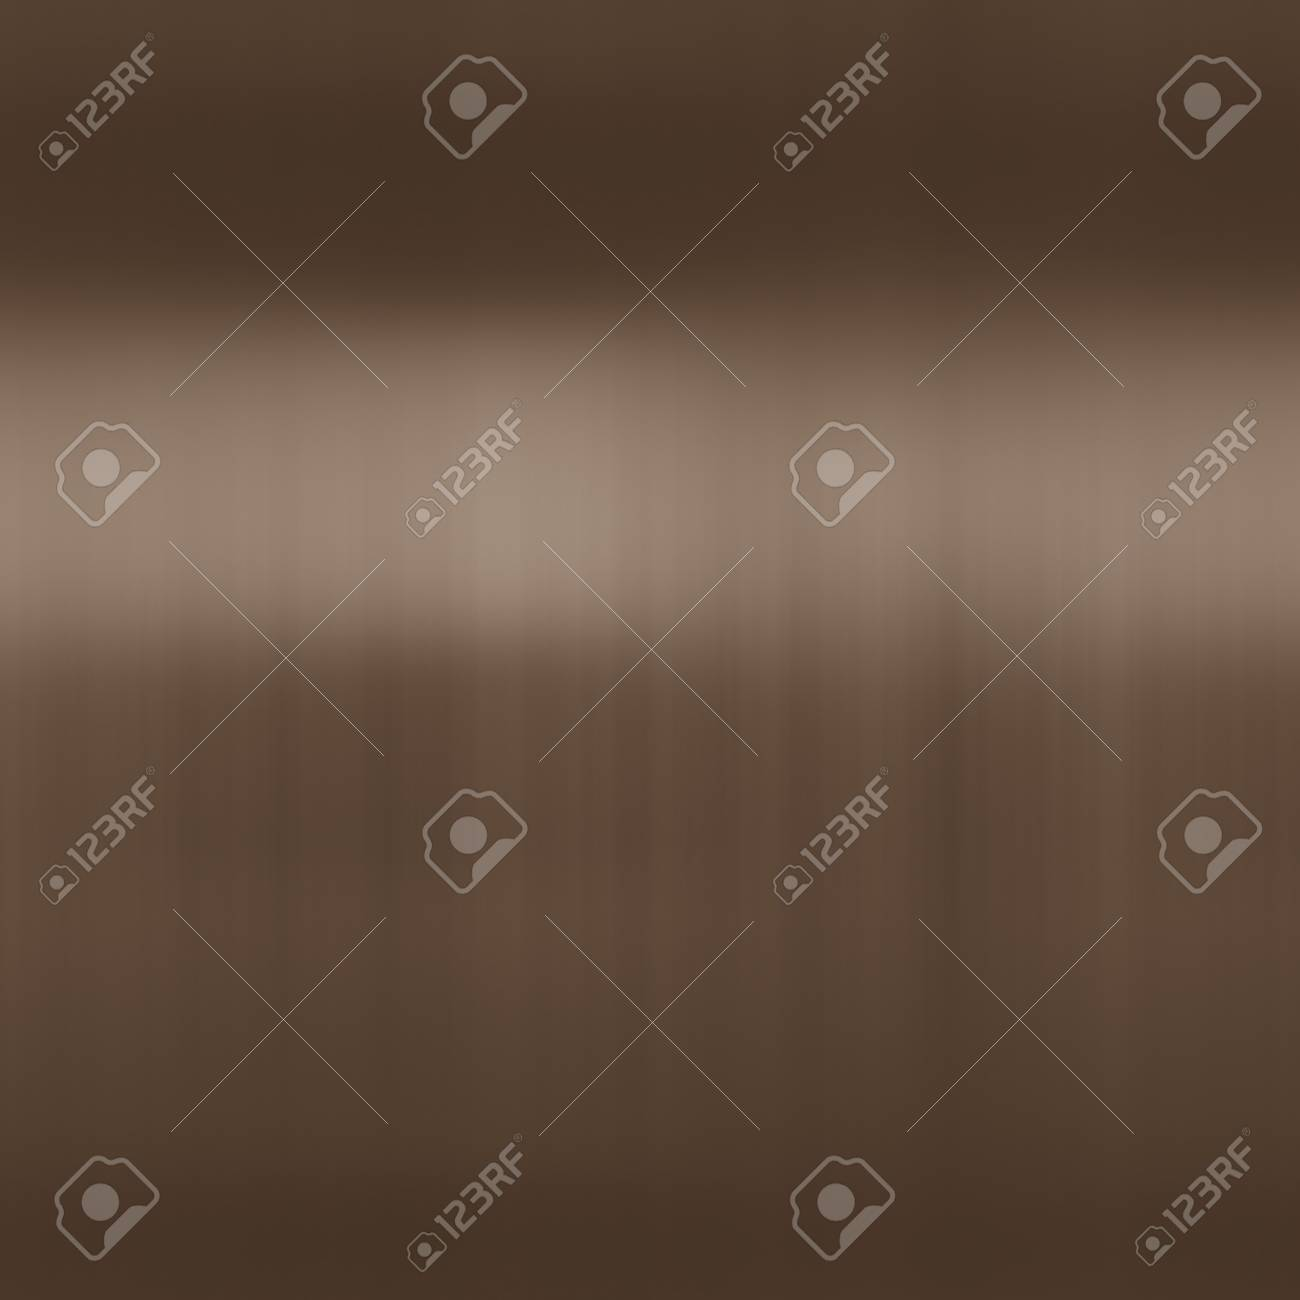 impressive metal surface tinted by brown color Stock Photo - 13630530